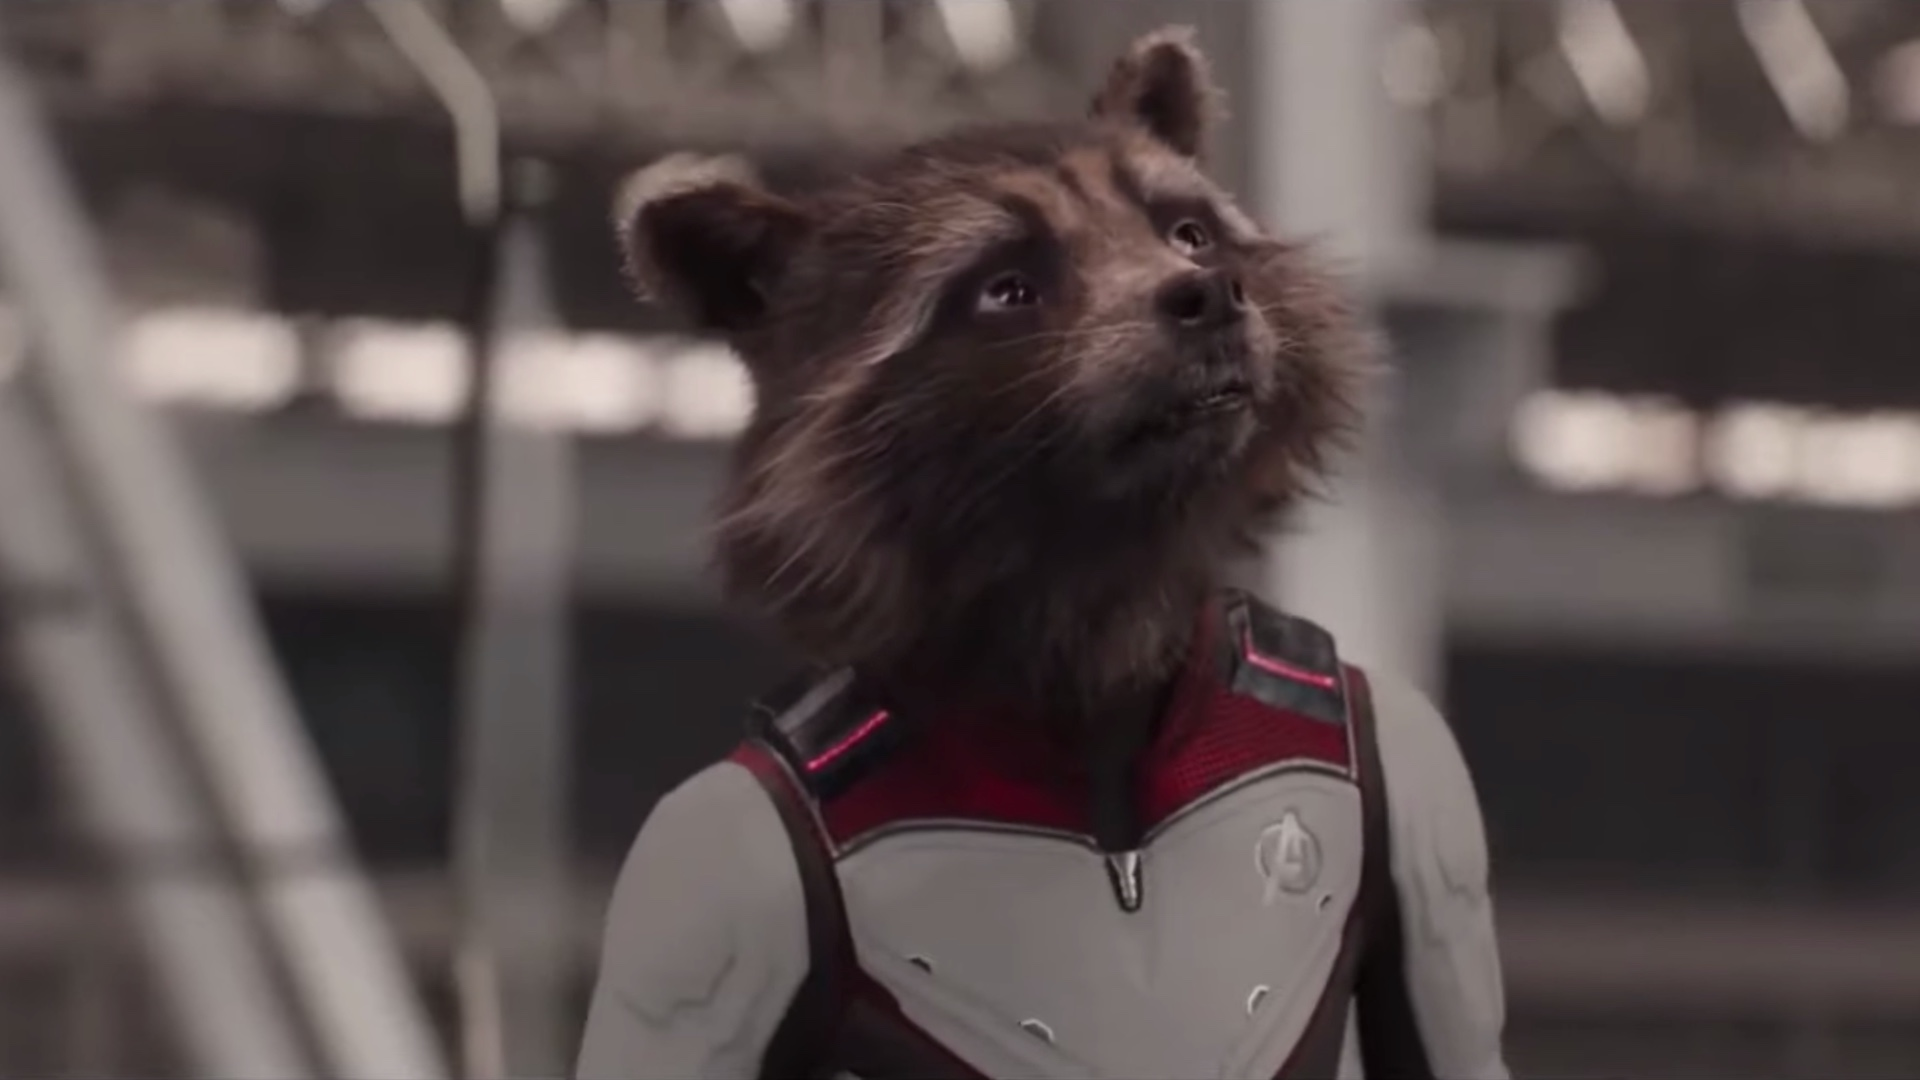 new-avengers-endgame-tv-spot-offers-more-new-footage-this-is-the-fight-of-our-lives-social.jpg